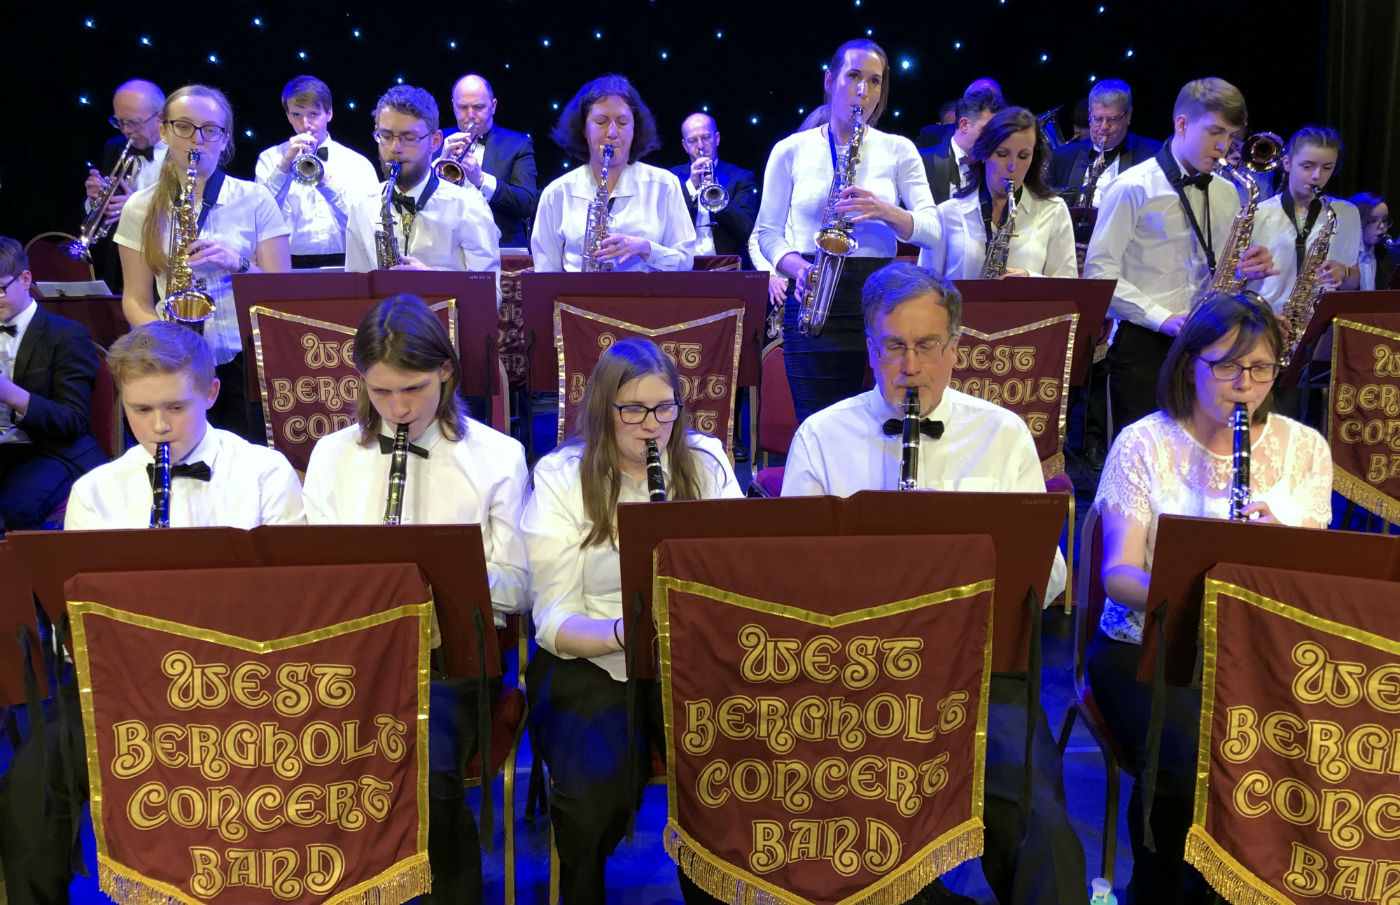 West Bergholt Band